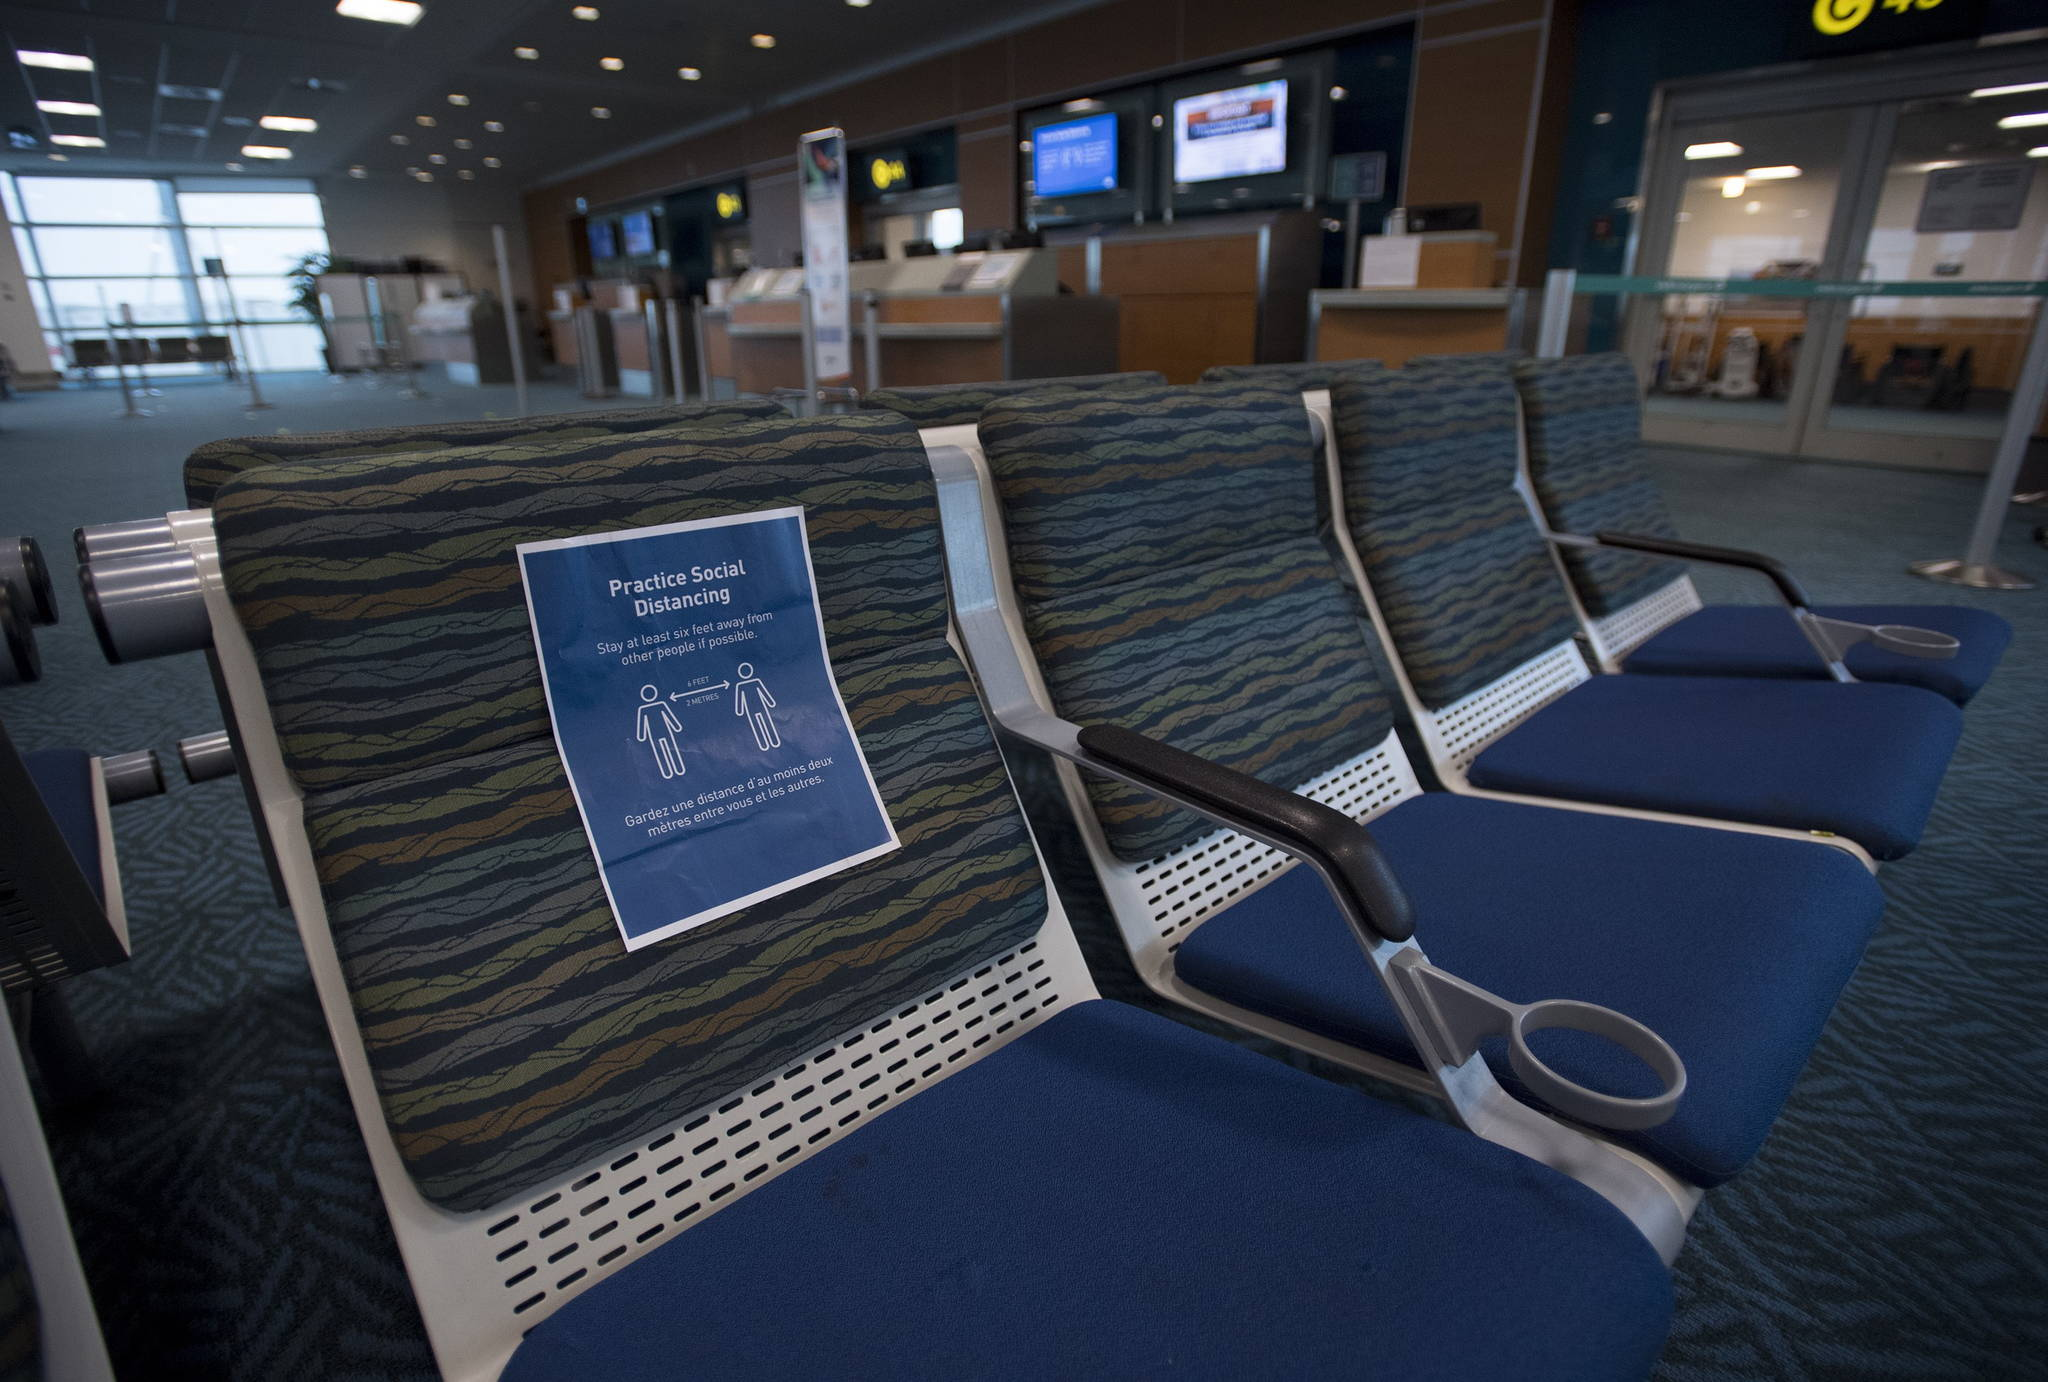 Near empty waiting areas at the flight gates are pictured at Vancouver International Airport, Tuesday, June 9, 2020. Airlines in Canada and around the world are suffering financially due to the lack of travel and travel bans due to COVID-19. THE CANADIAN PRESS/Jonathan Hayward